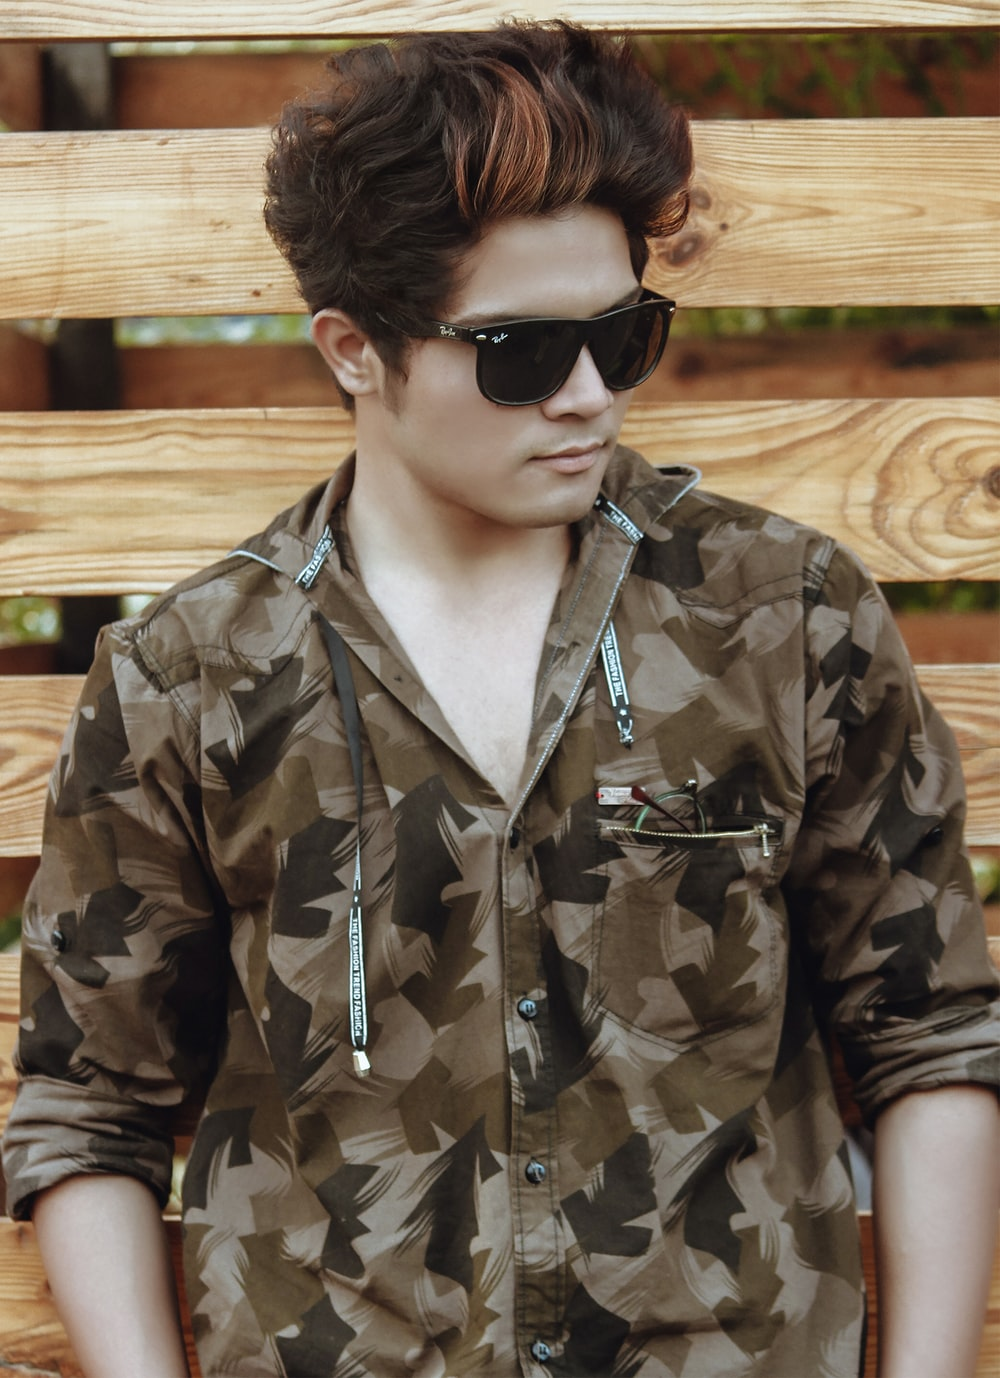 man wearing camouflage button-up jacket